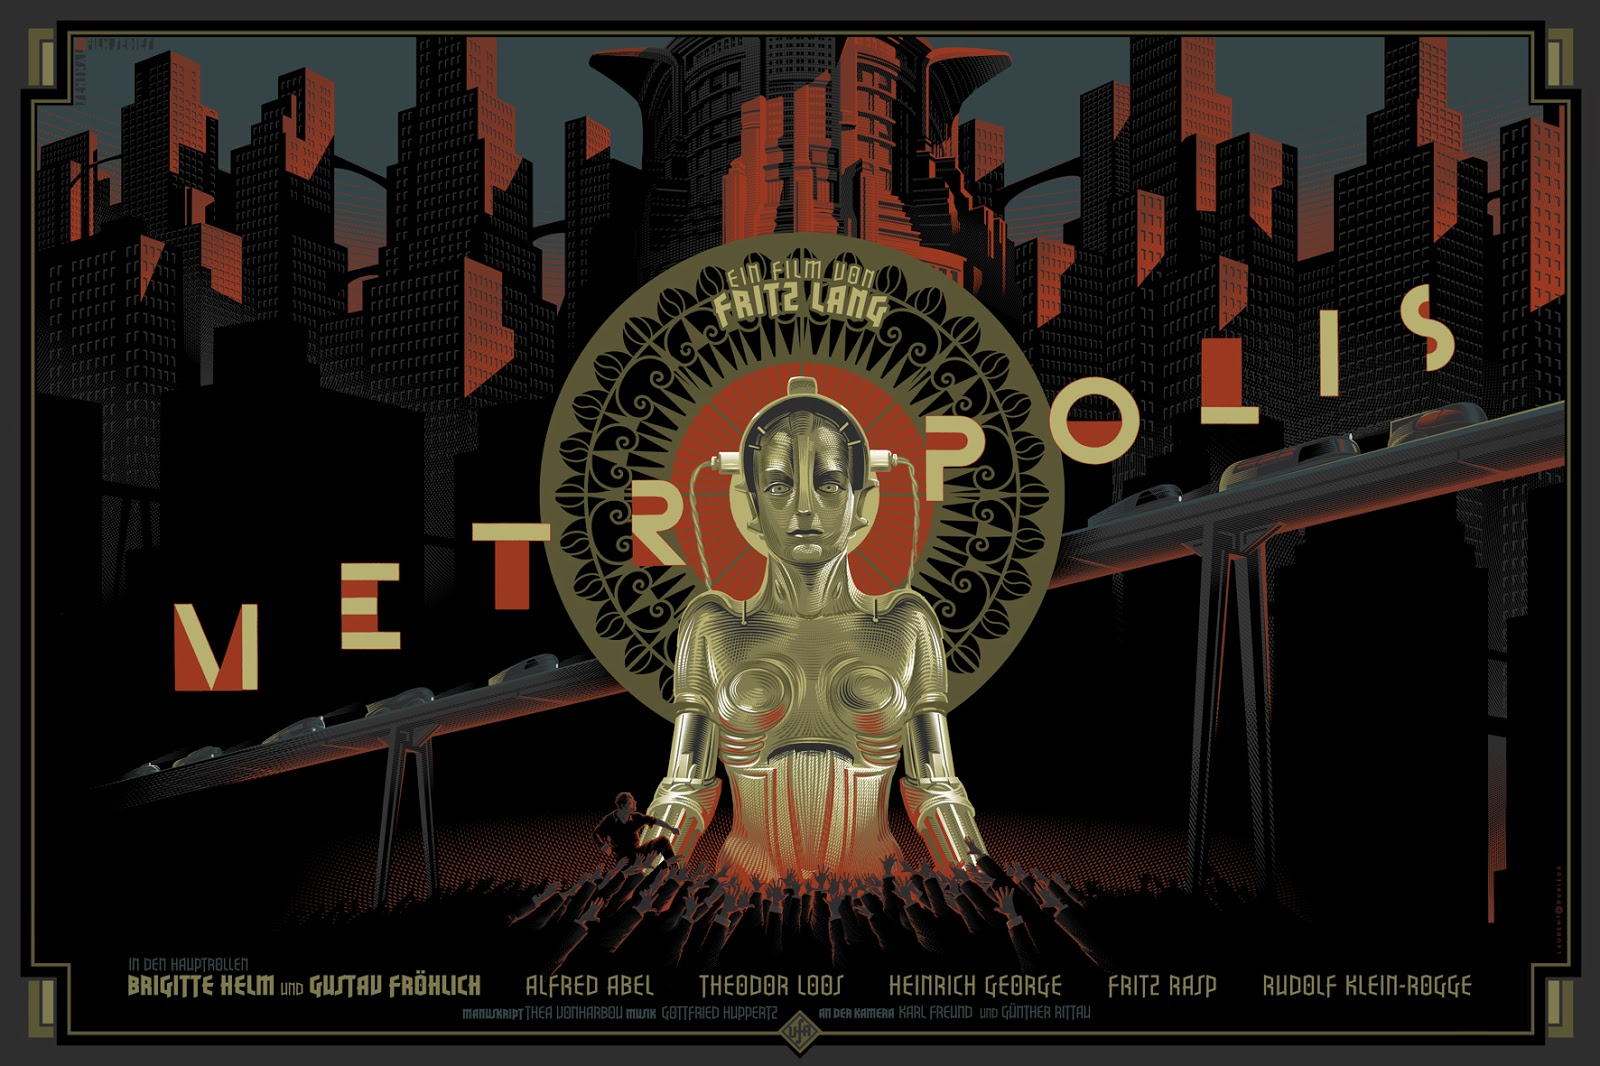 A poster of the film Metropolis (1927)